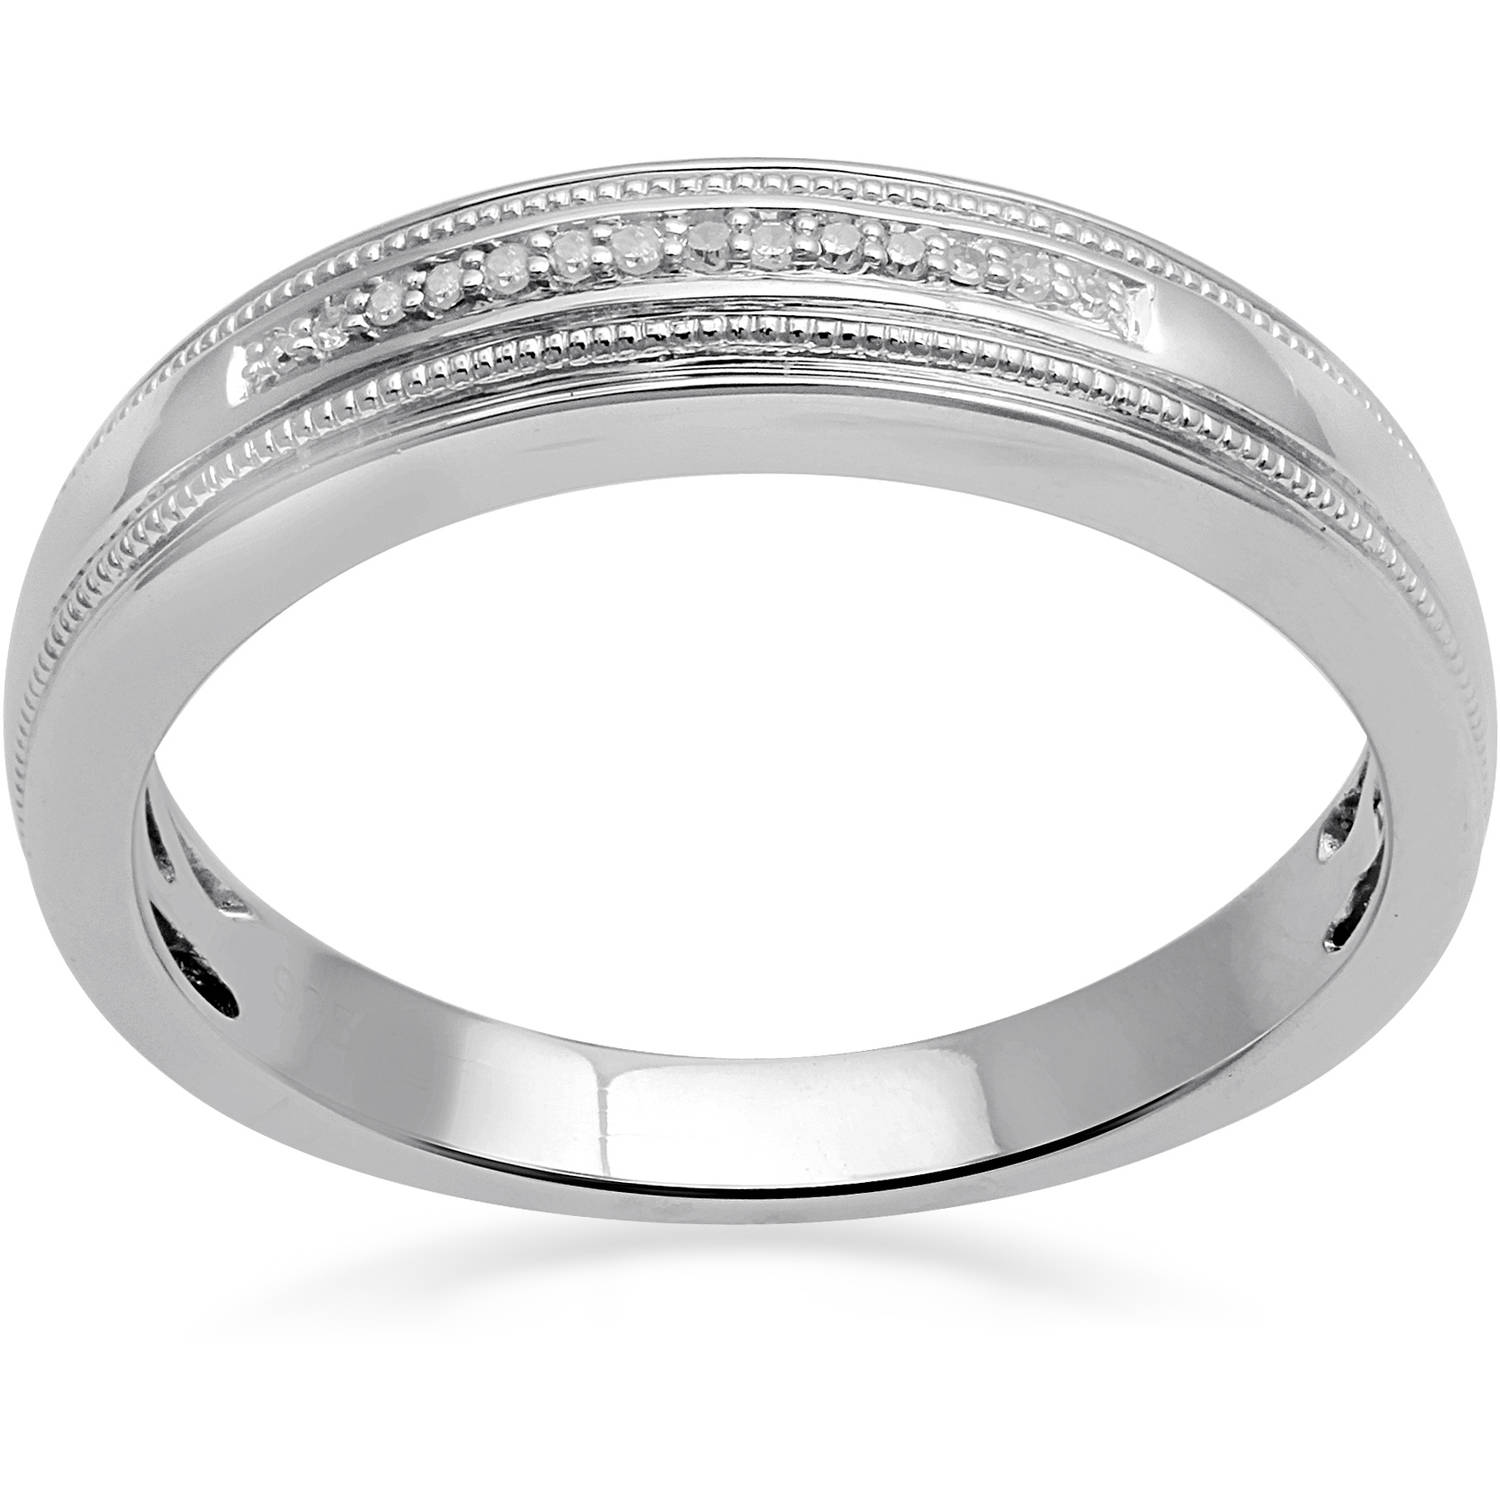 Forever Bride 1/20 Carat T.W. Diamond Sterling Silver Men's Ring